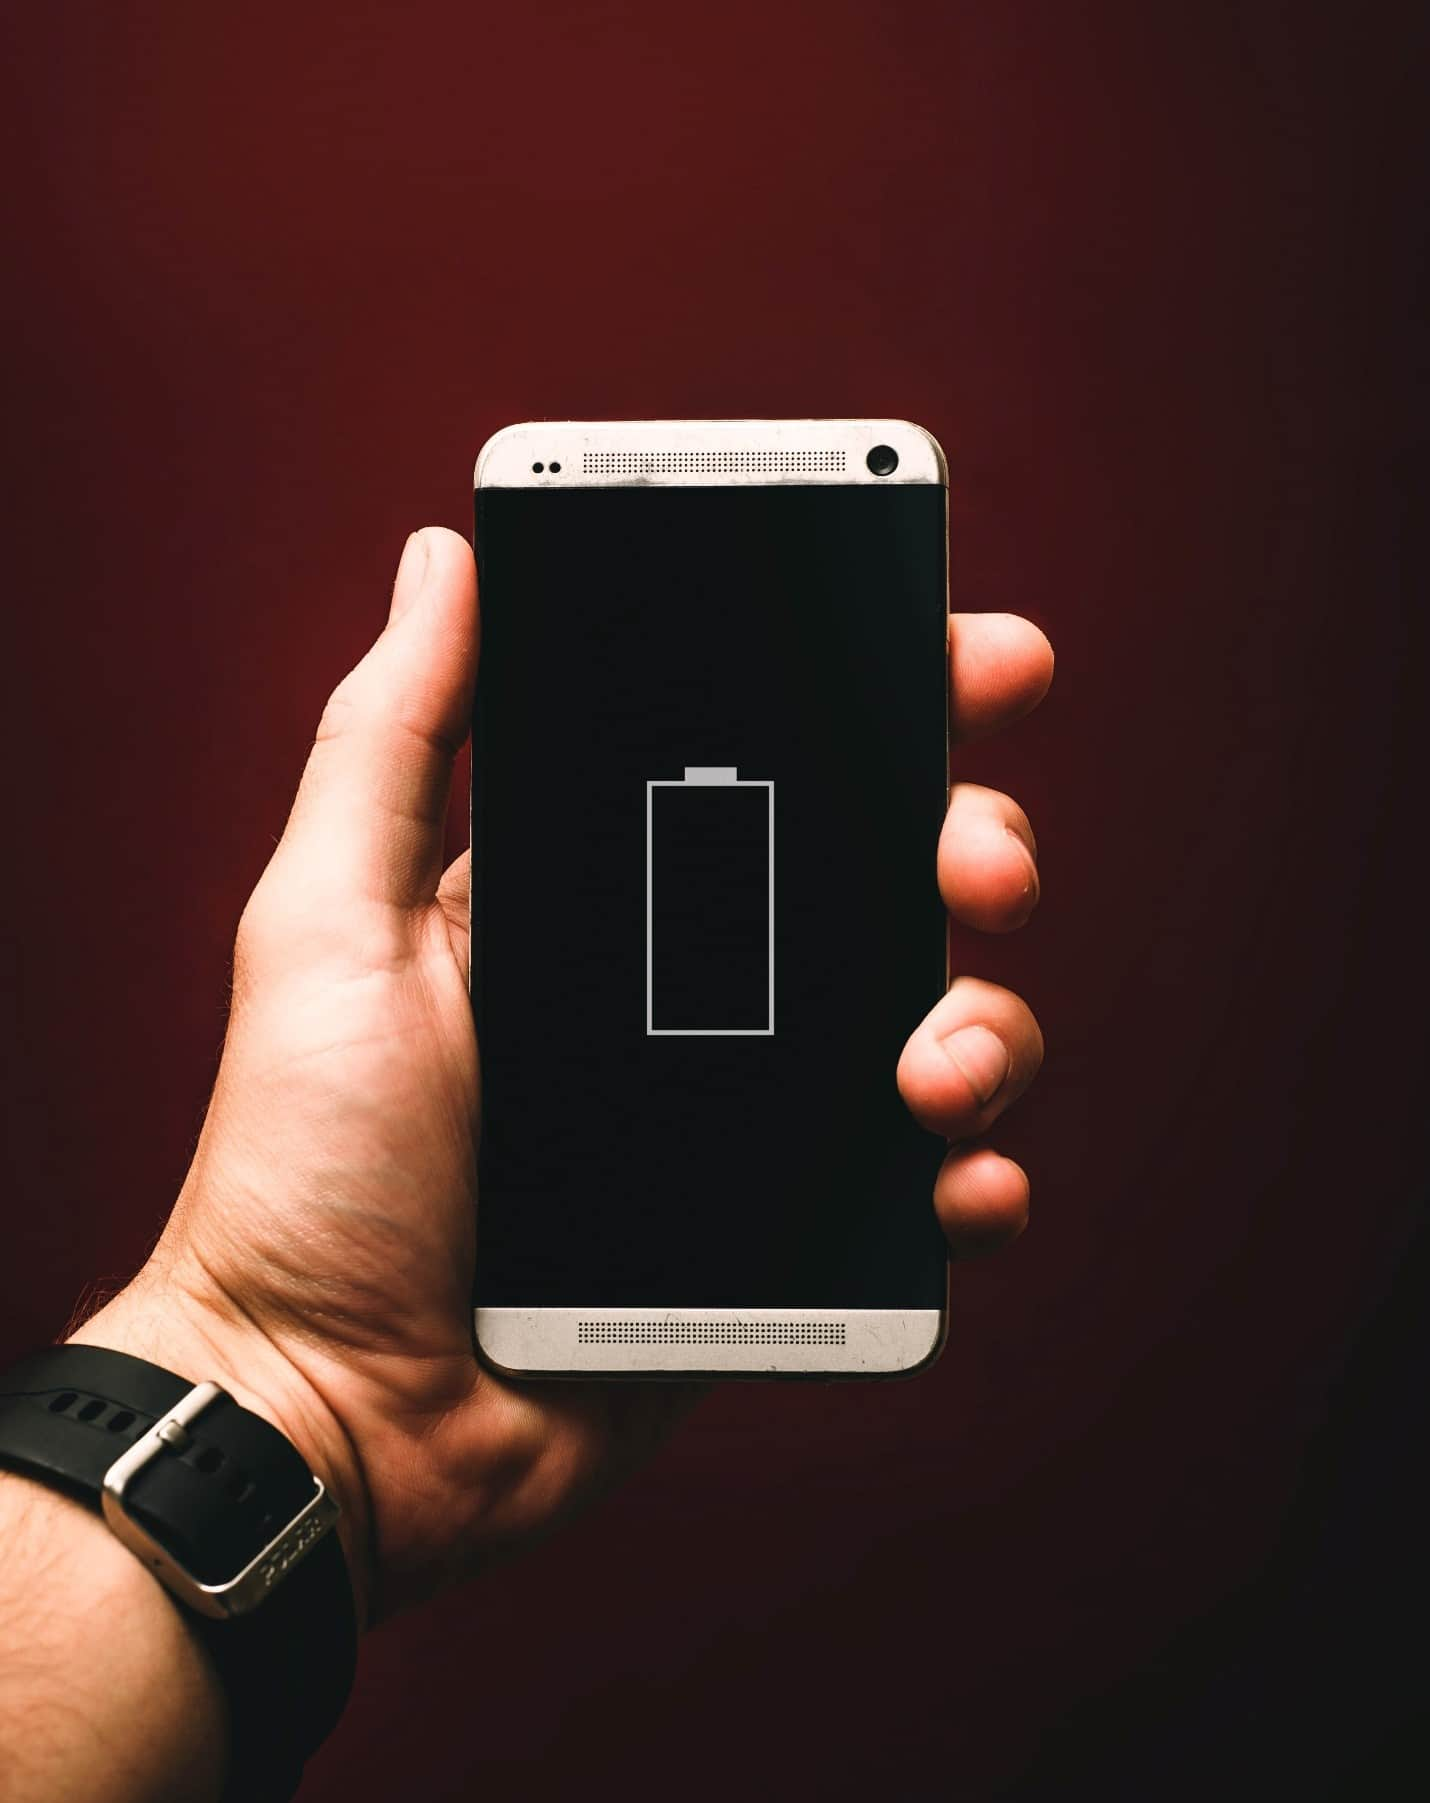 content/en-in/images/repository/isc/2020/9910/prolong-your-smartphone-battery-lifespan-1.jpg